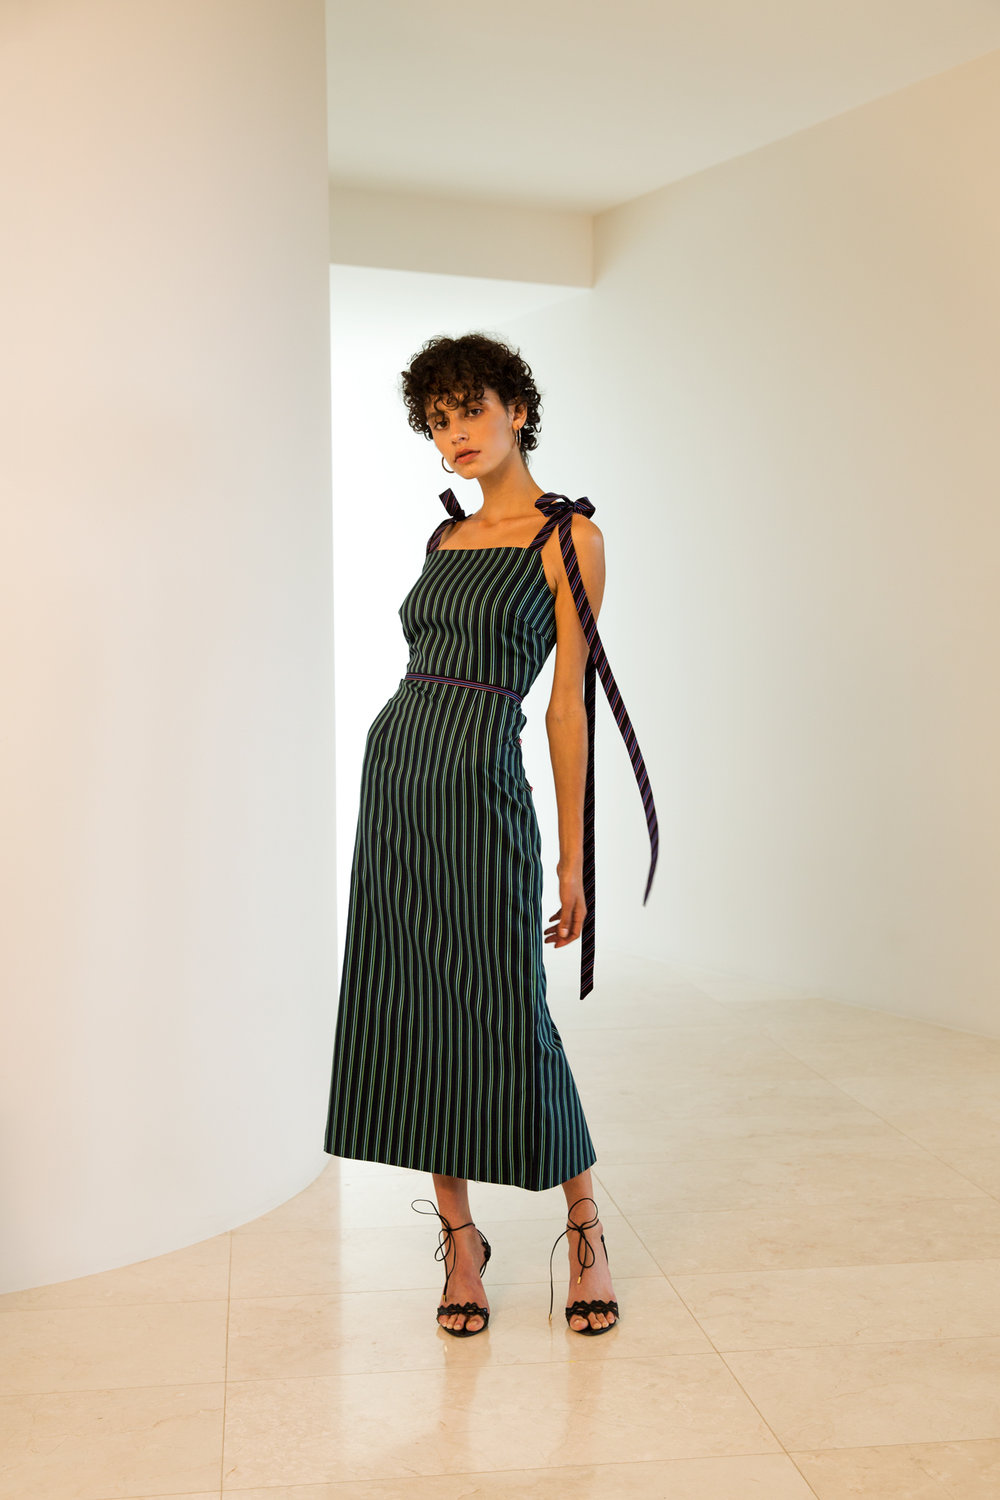 PF_TieDress_Resort18LookBook0338.jpg